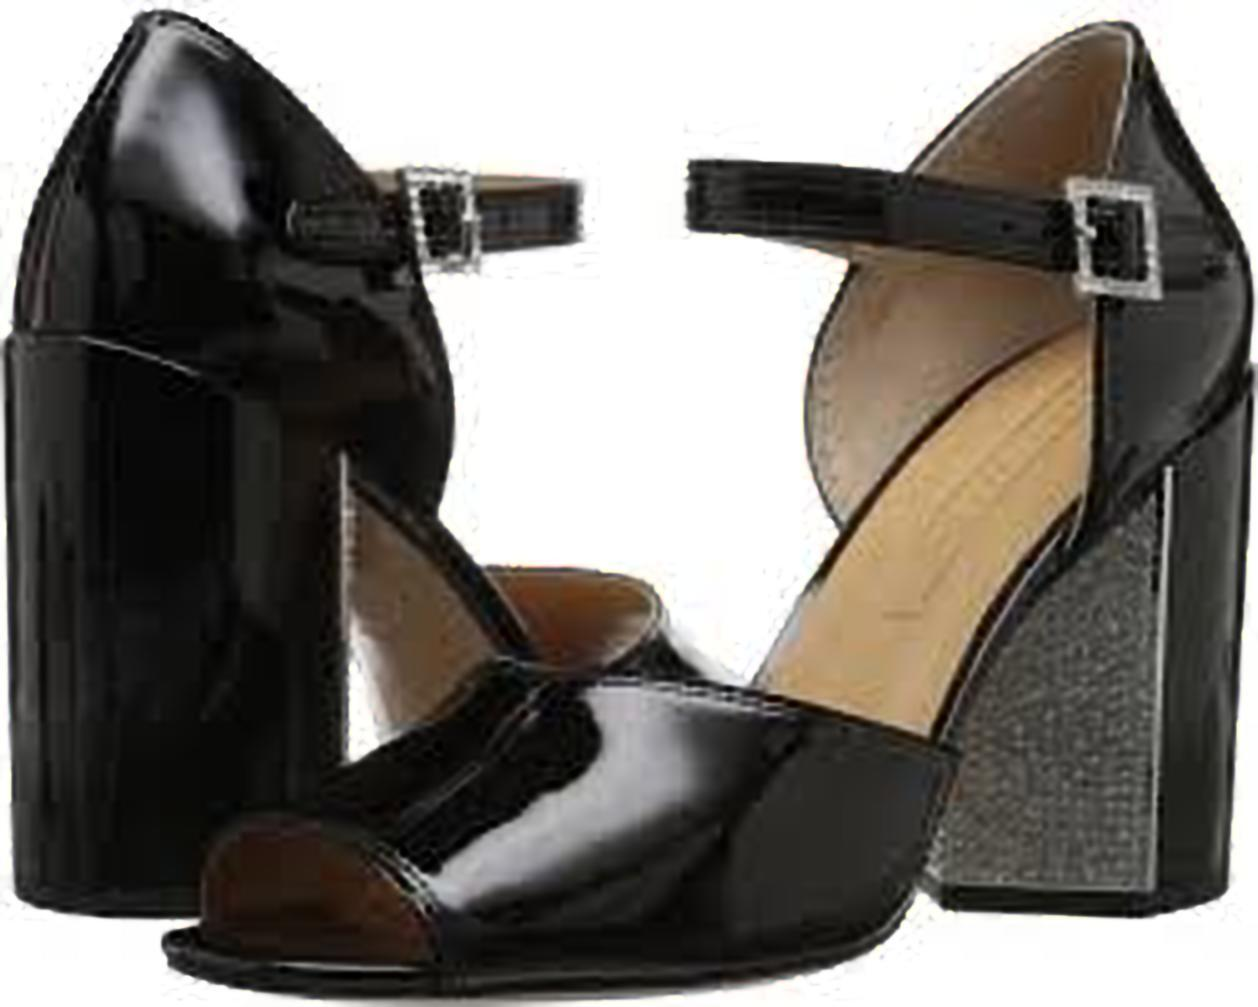 Marc Jacobs Kasia Strass Heeled Sandals Size 37.5